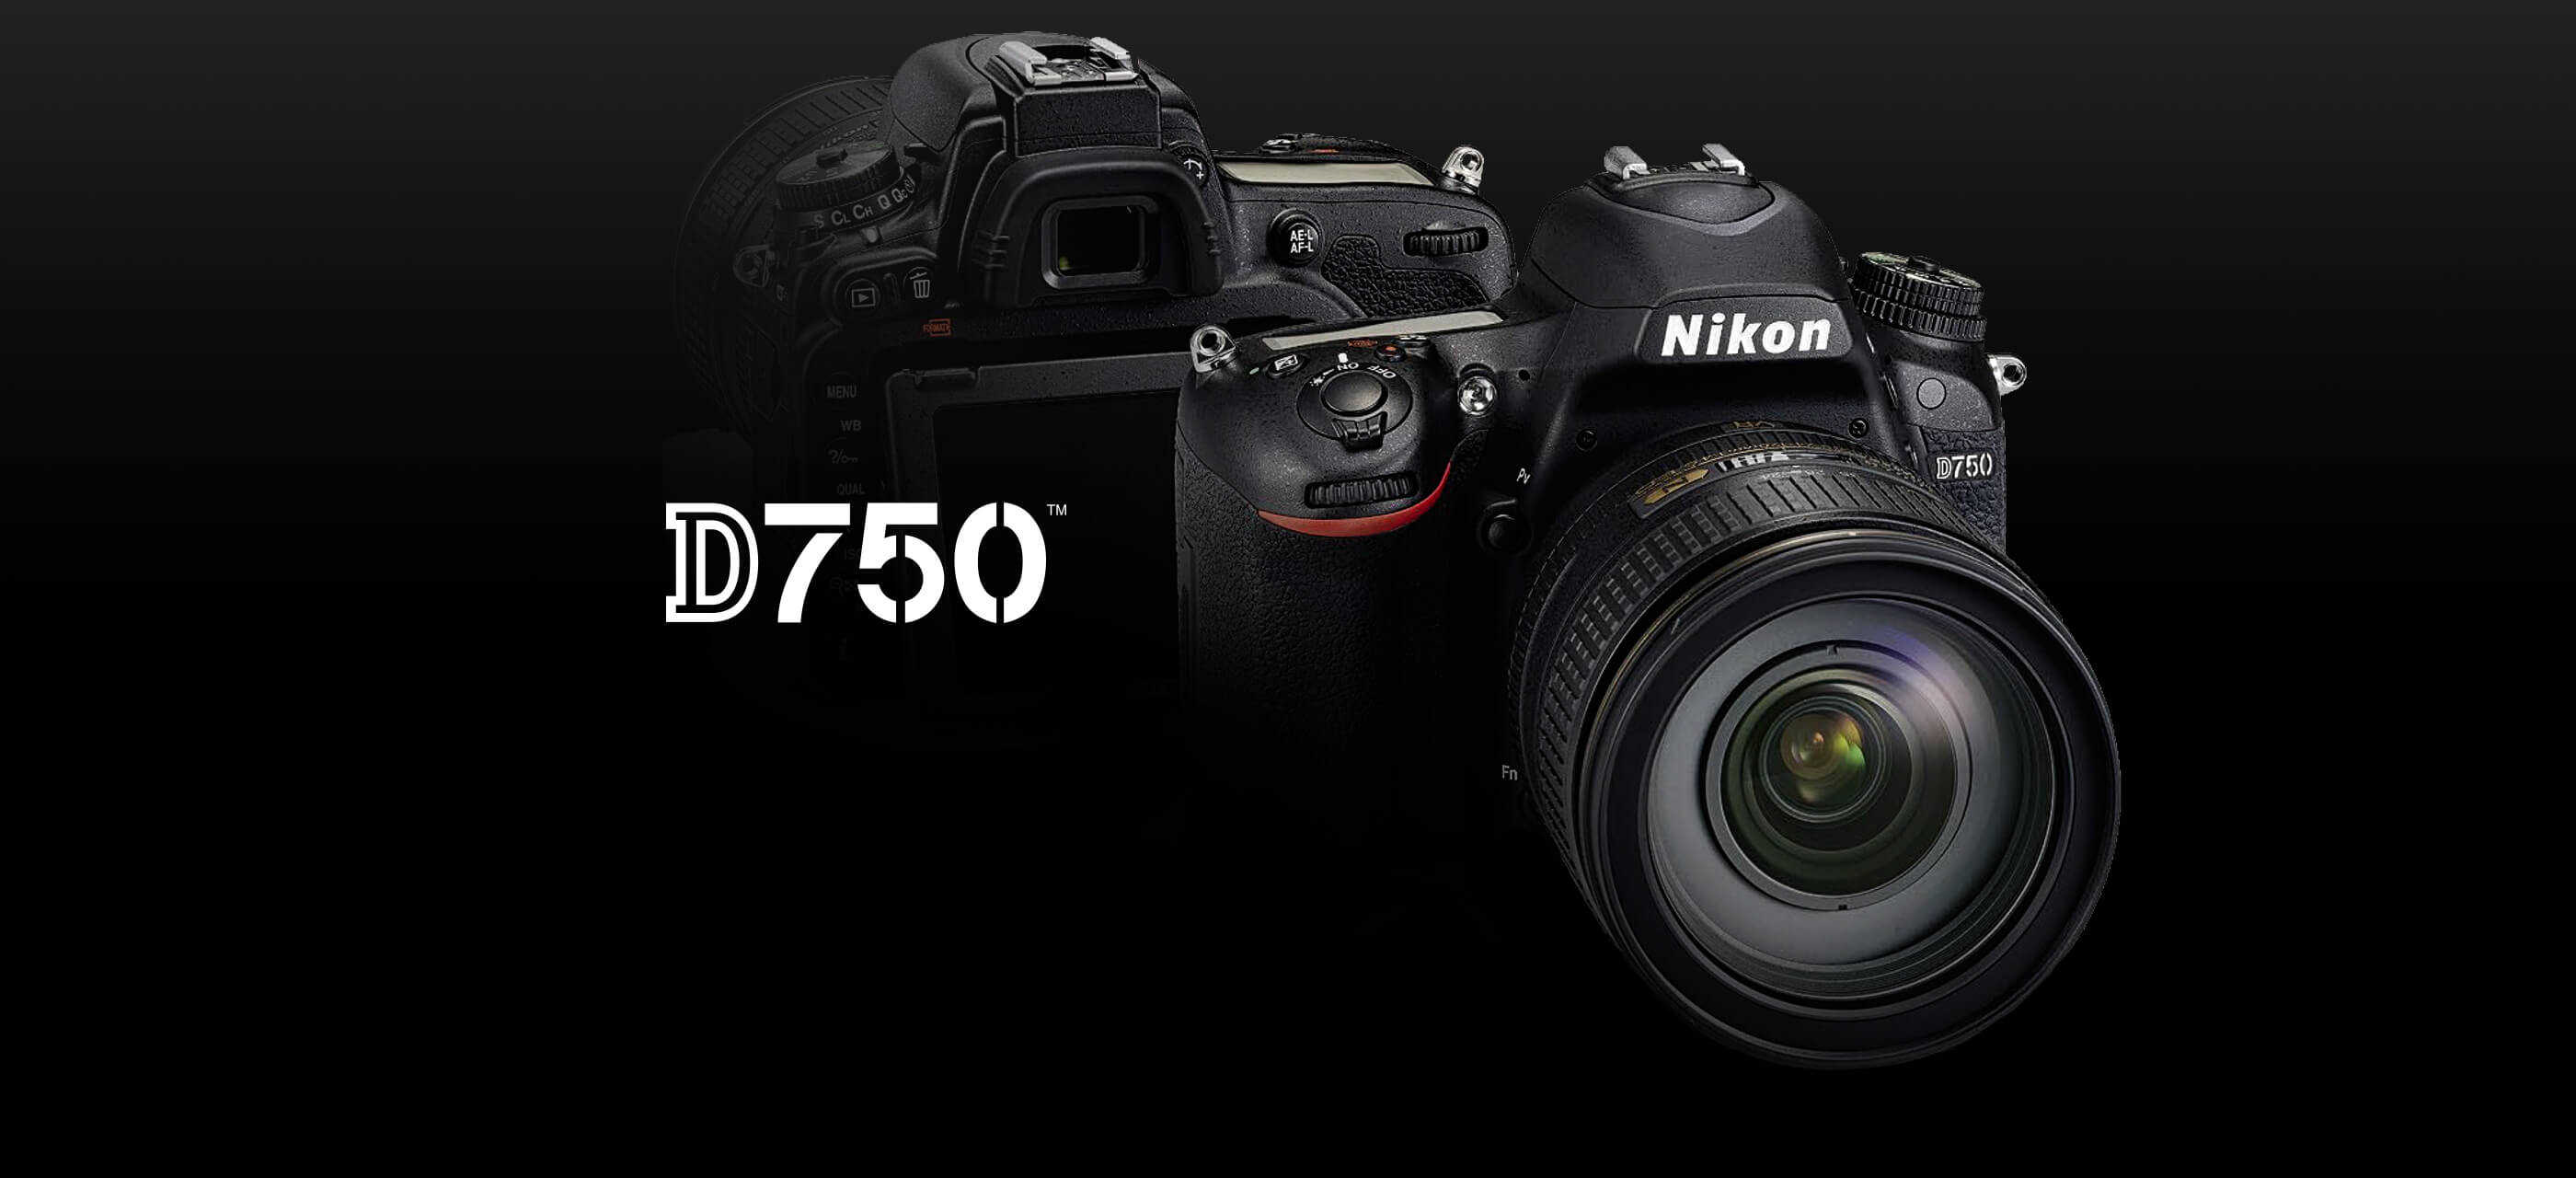 D750 black Nikon digital camera